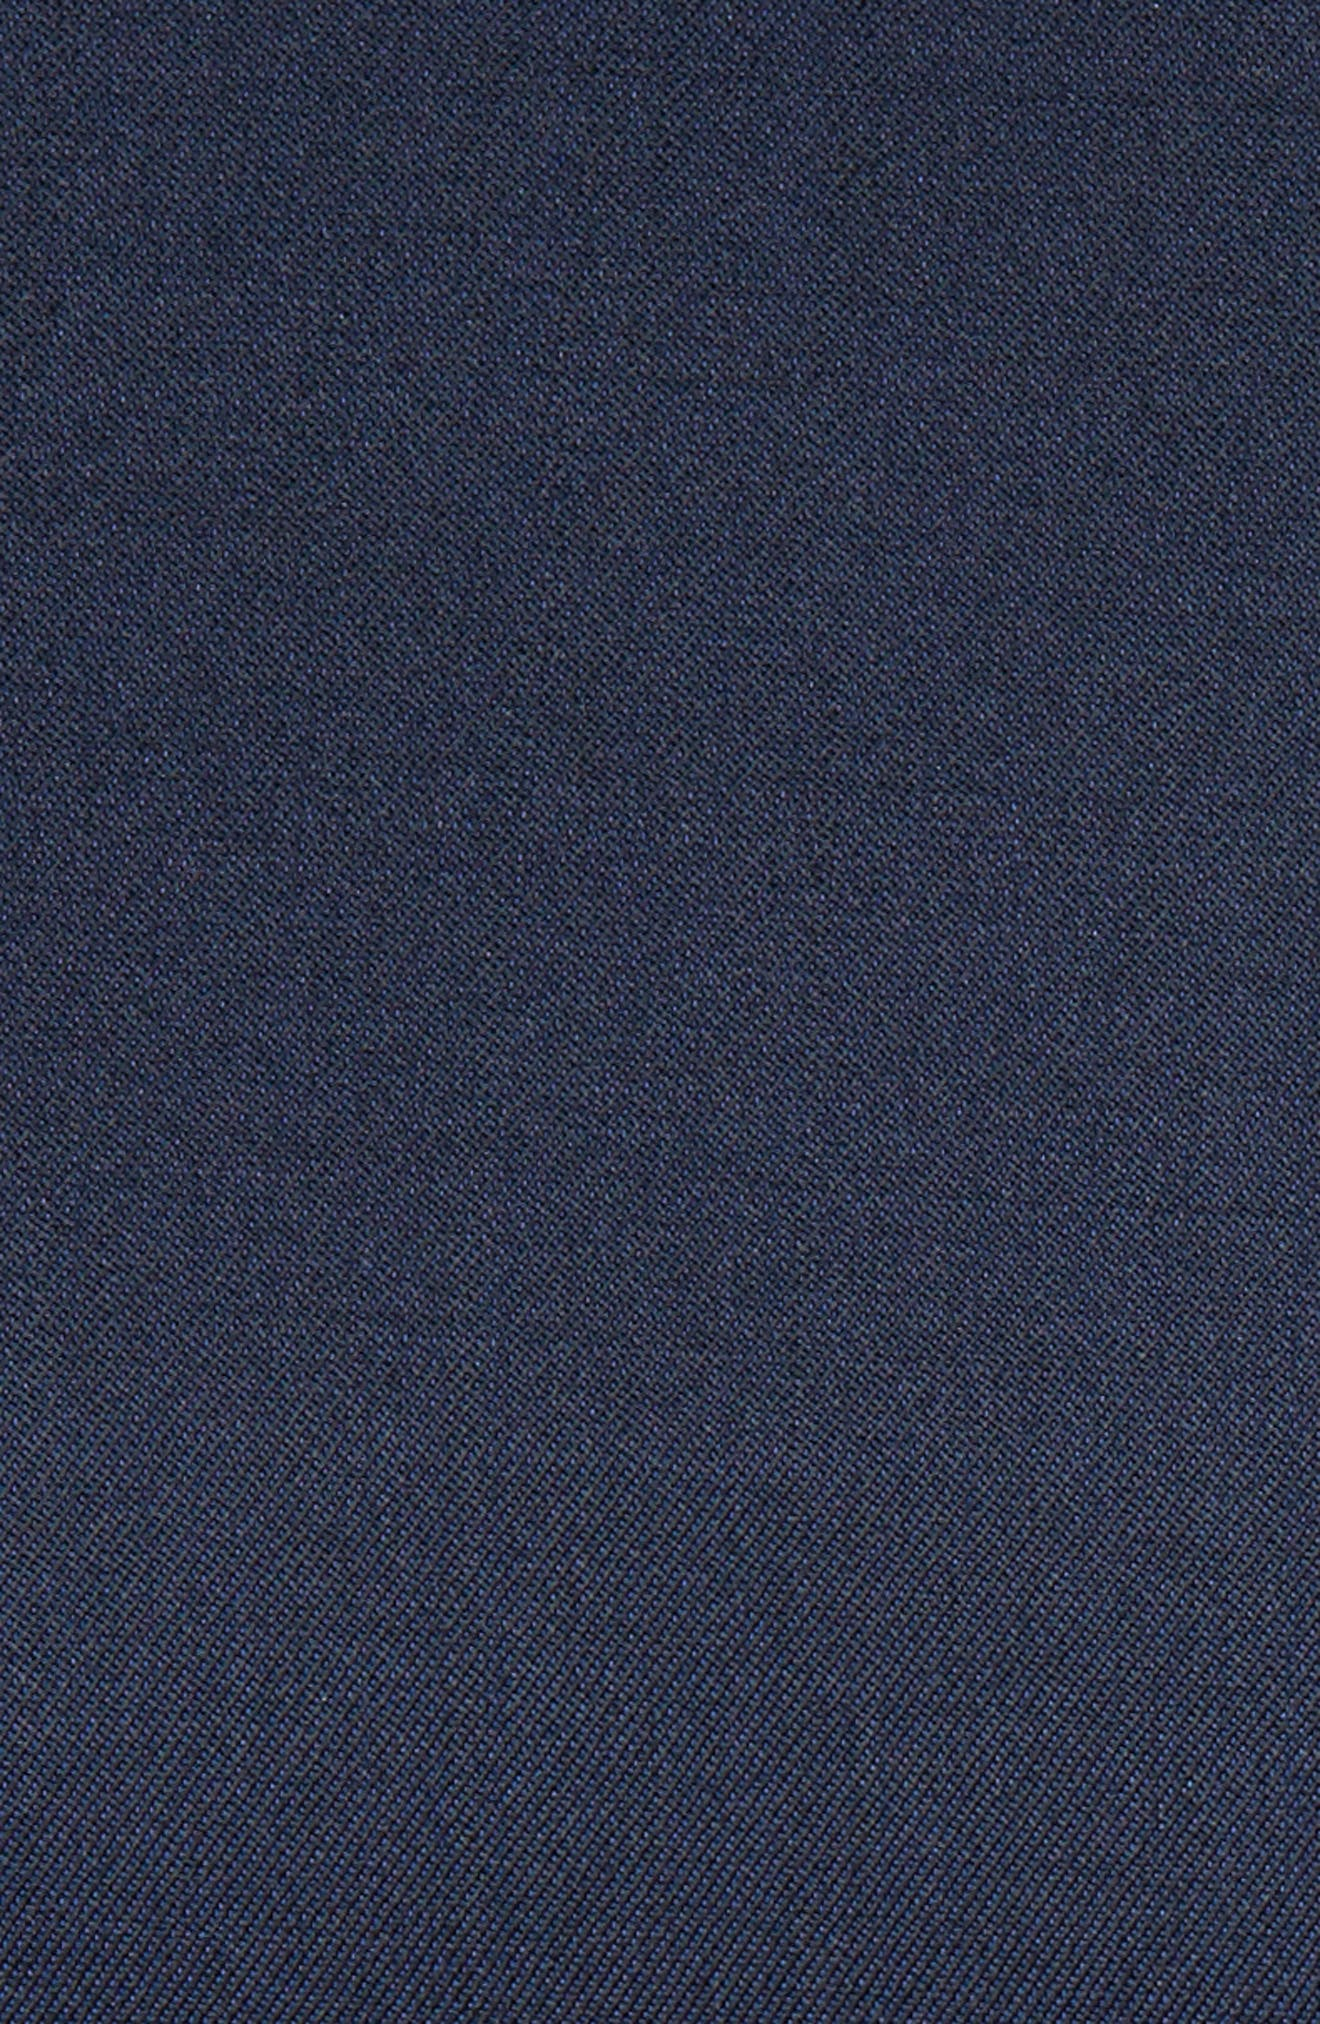 TED BAKER LONDON, Josh Trim Fit Navy Shawl Lapel Tuxedo, Alternate thumbnail 4, color, NAVY BLUE